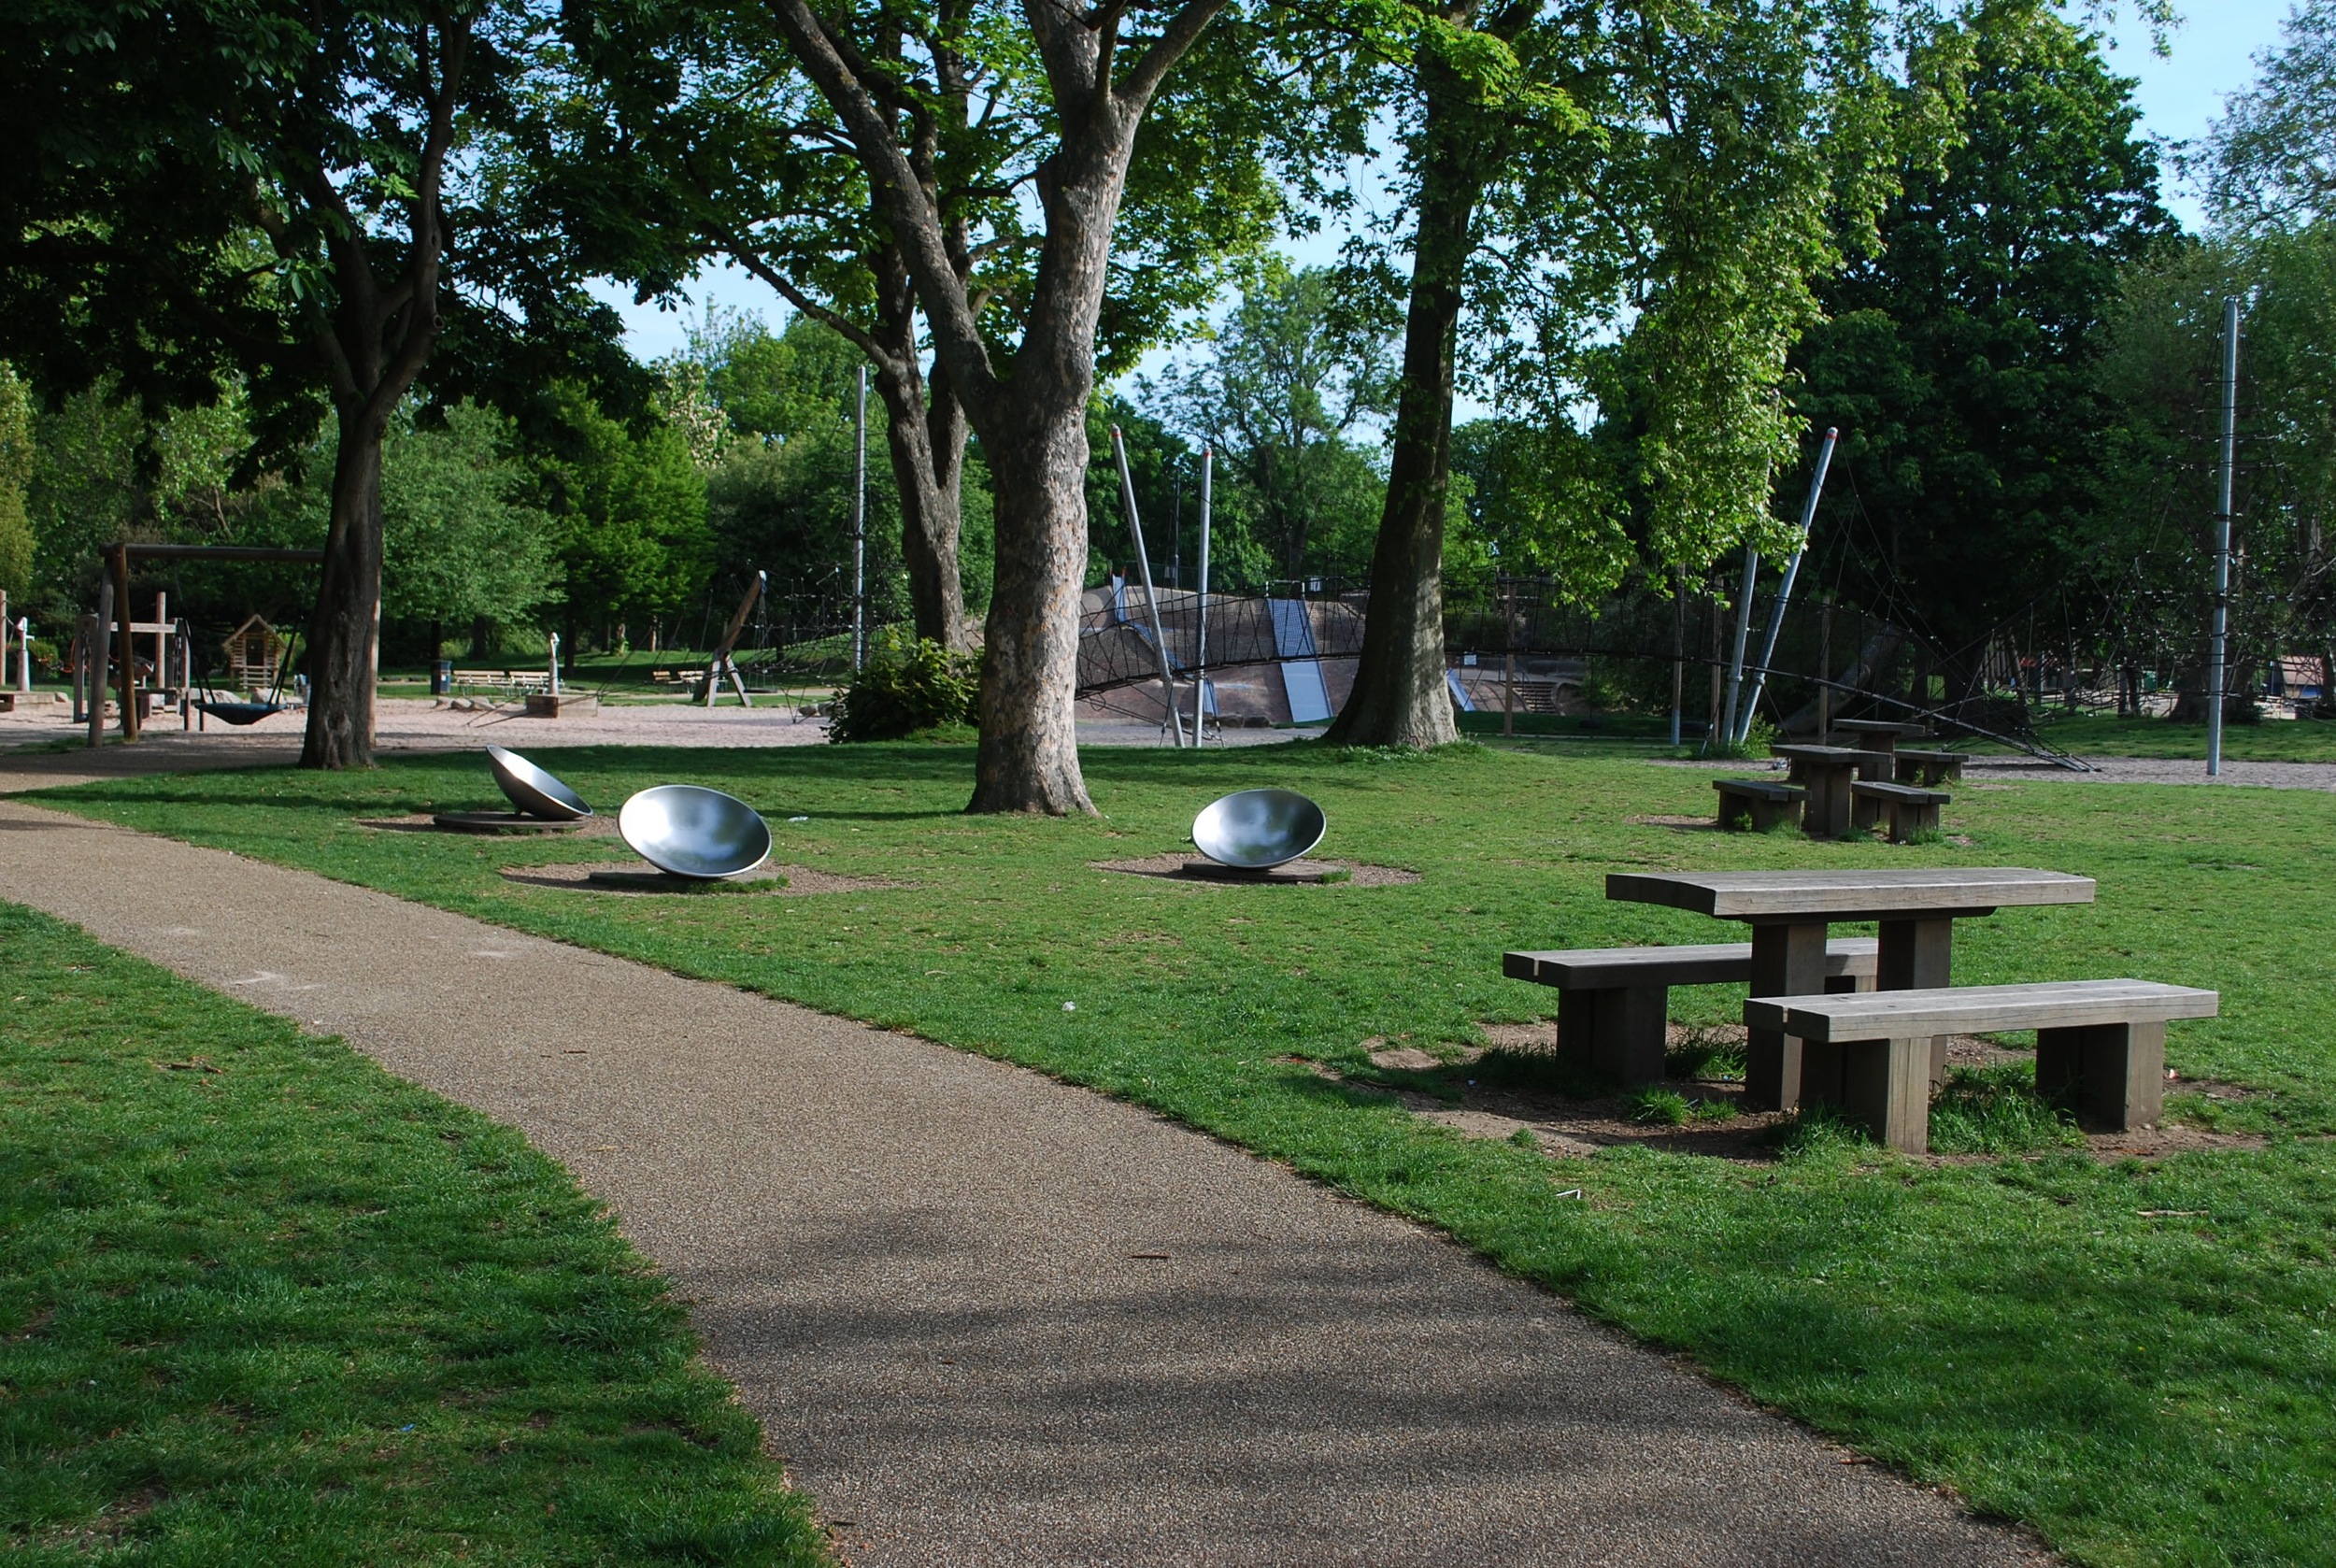 Tables and benches at Pools Playground, Victoria Park, are within sight of the playground, but not interfering with play flow